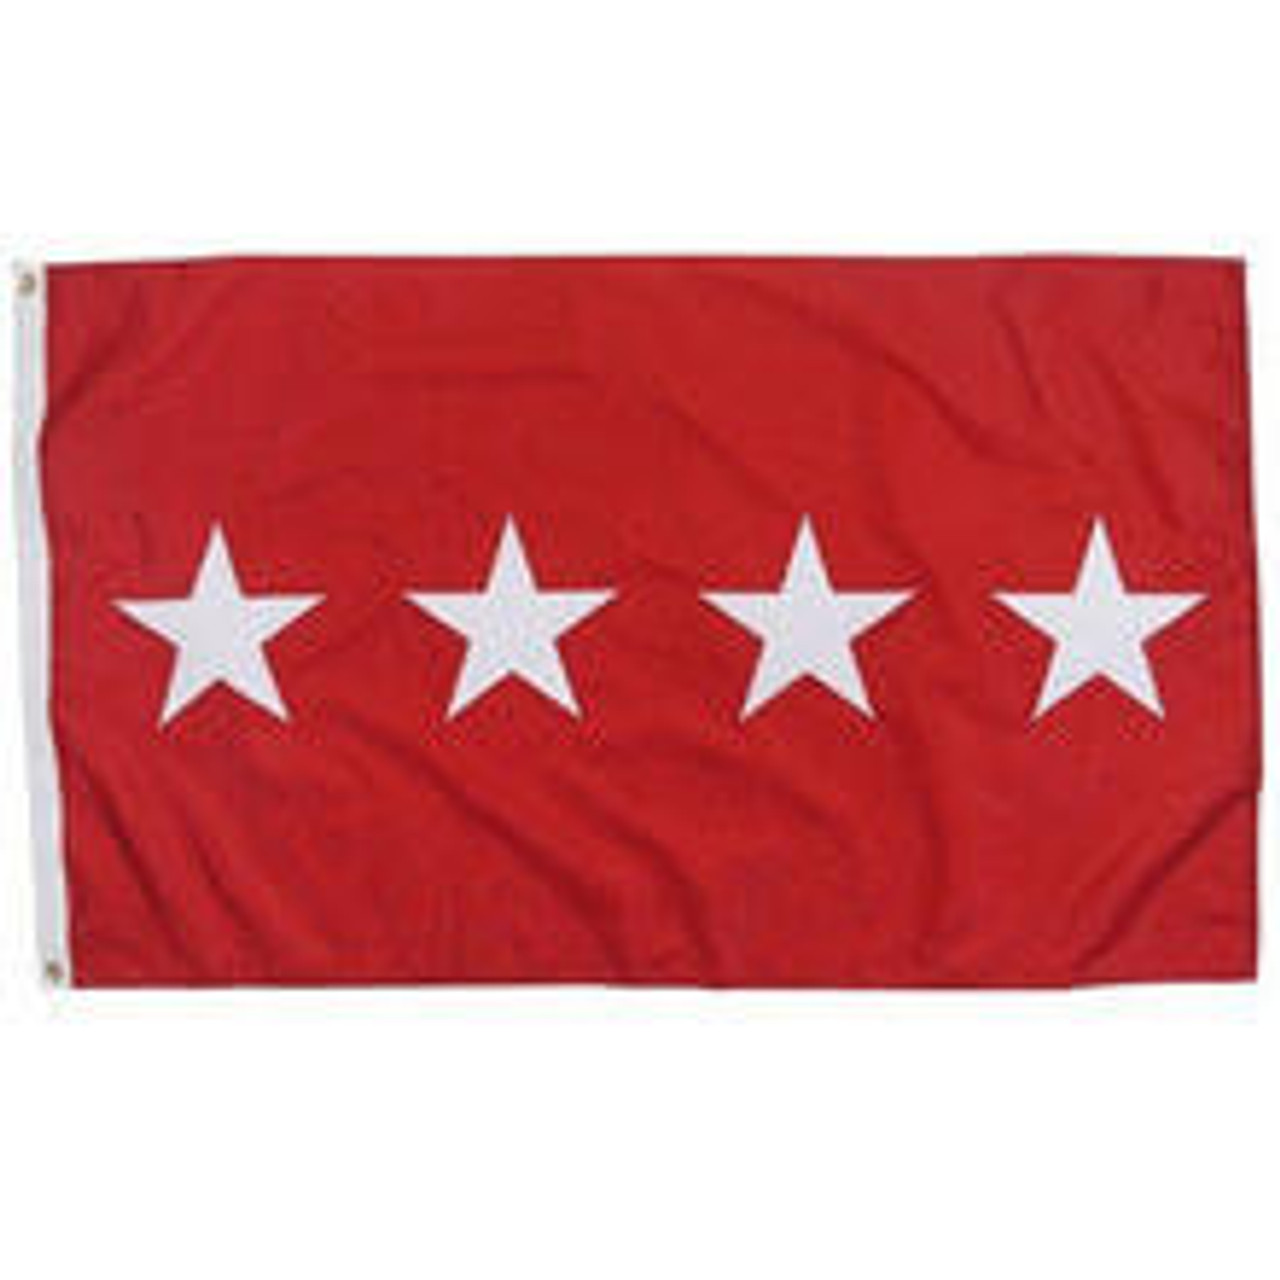 An Army 4 Star Officer Flag made of nylon with lock stitching, polyester canvas heading, and brass grommets. Has a red background with 4 white starts spaced horizontally and centered vertically.